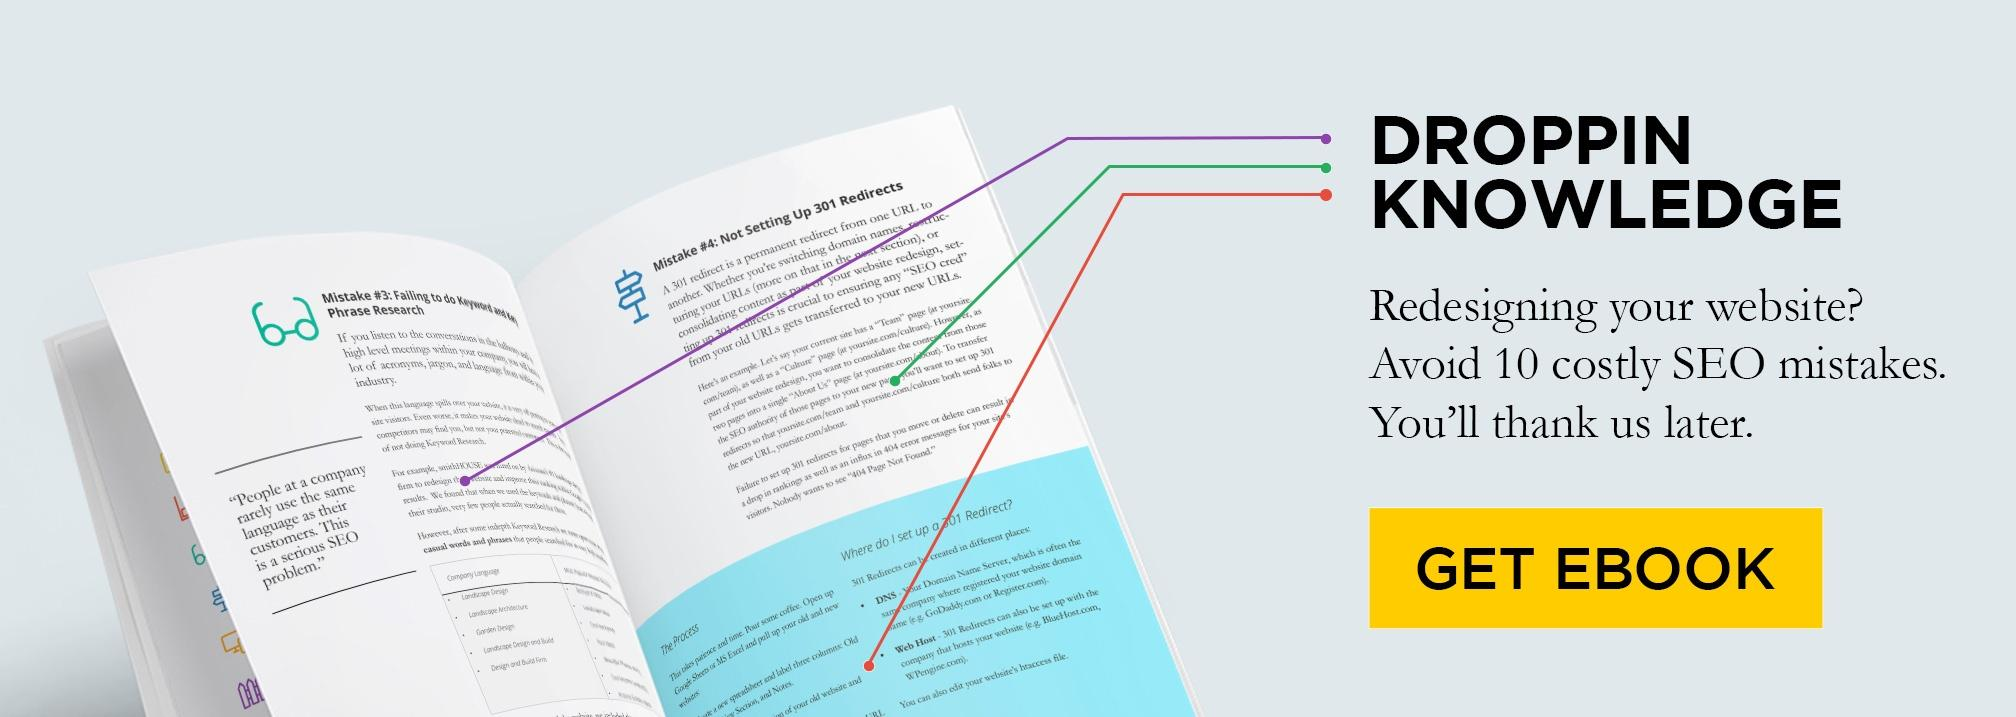 Free eBook: 10 SEO Mistakes to Avoid When Relaunching Your Website